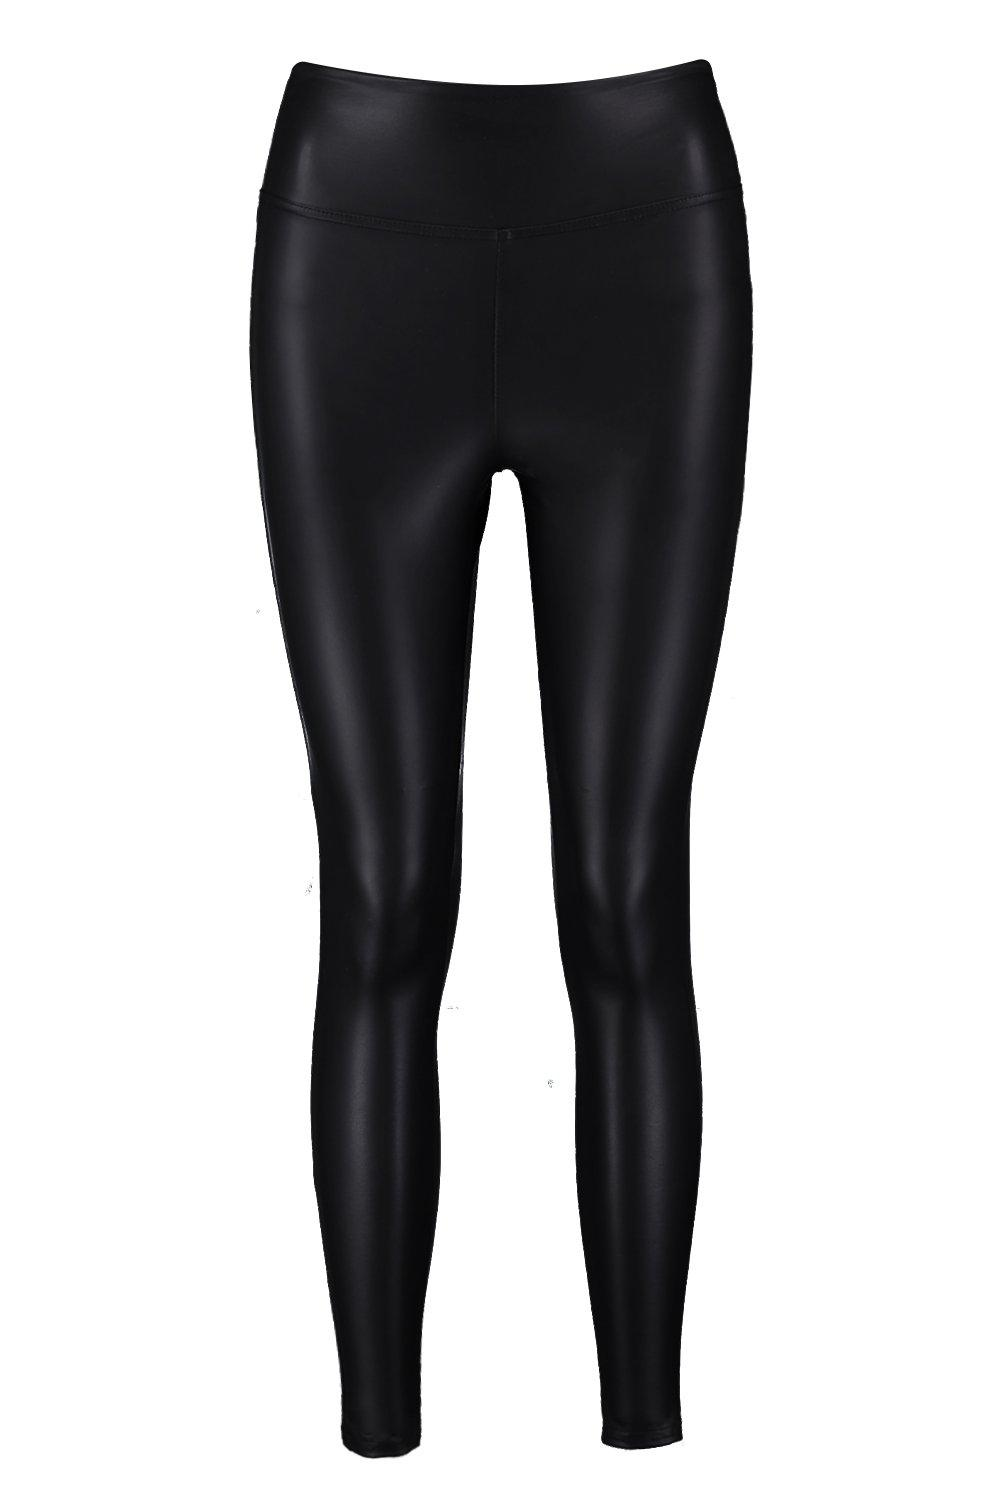 1d40137064a931 Leather Look High Waist Skinny Leggings. Womens Black Leather Look High  Waist Skinny Leggings